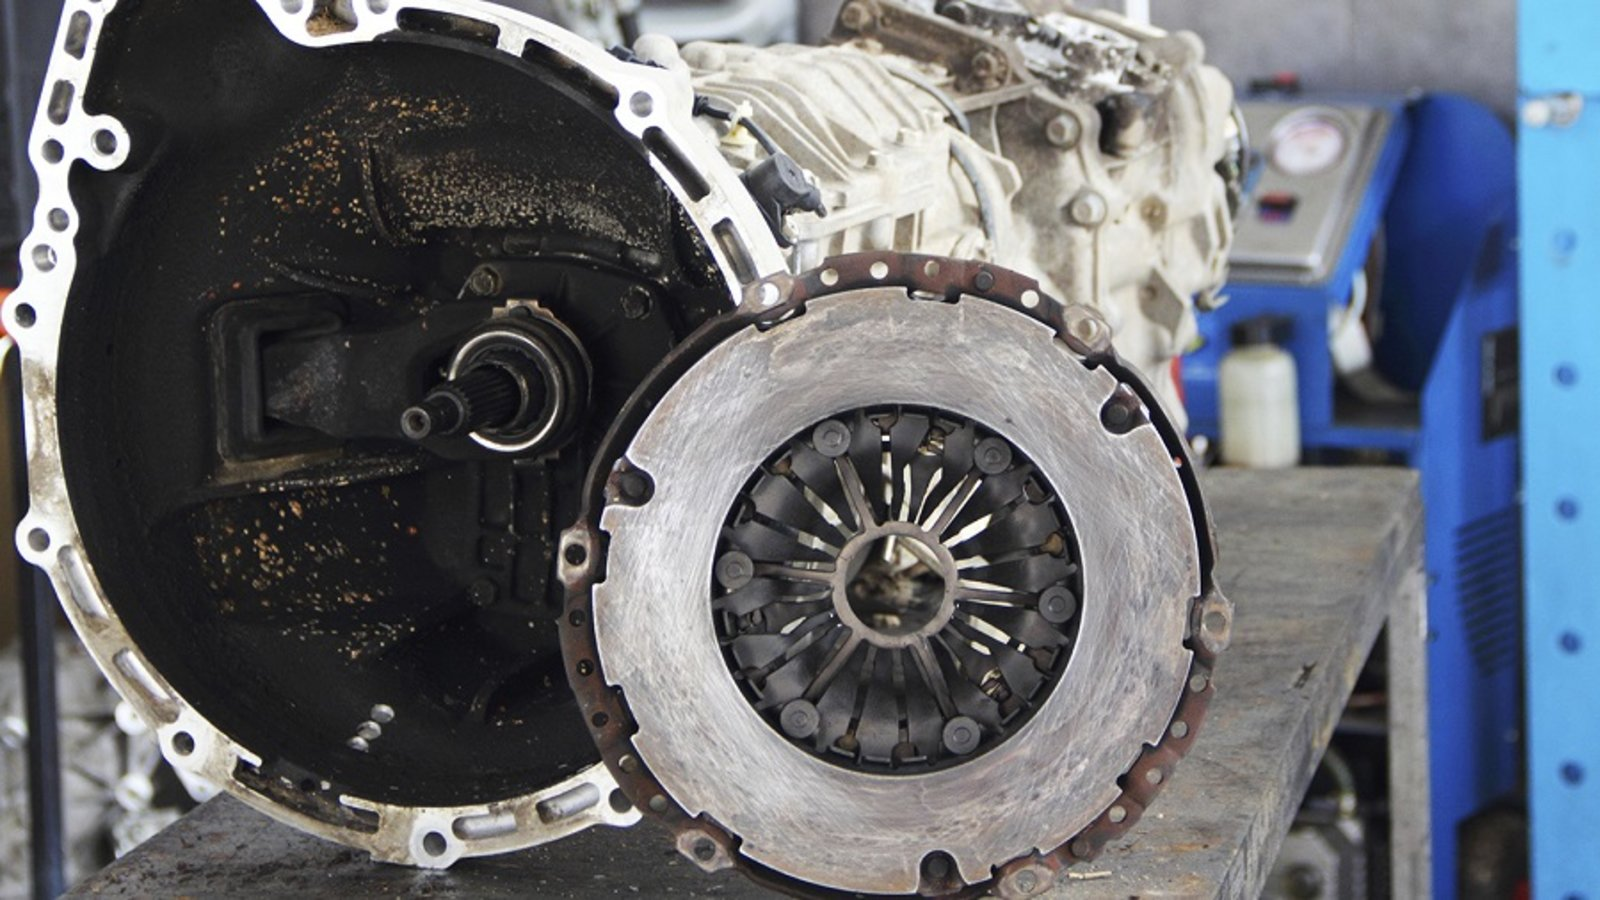 Torque, Power, and Transmission